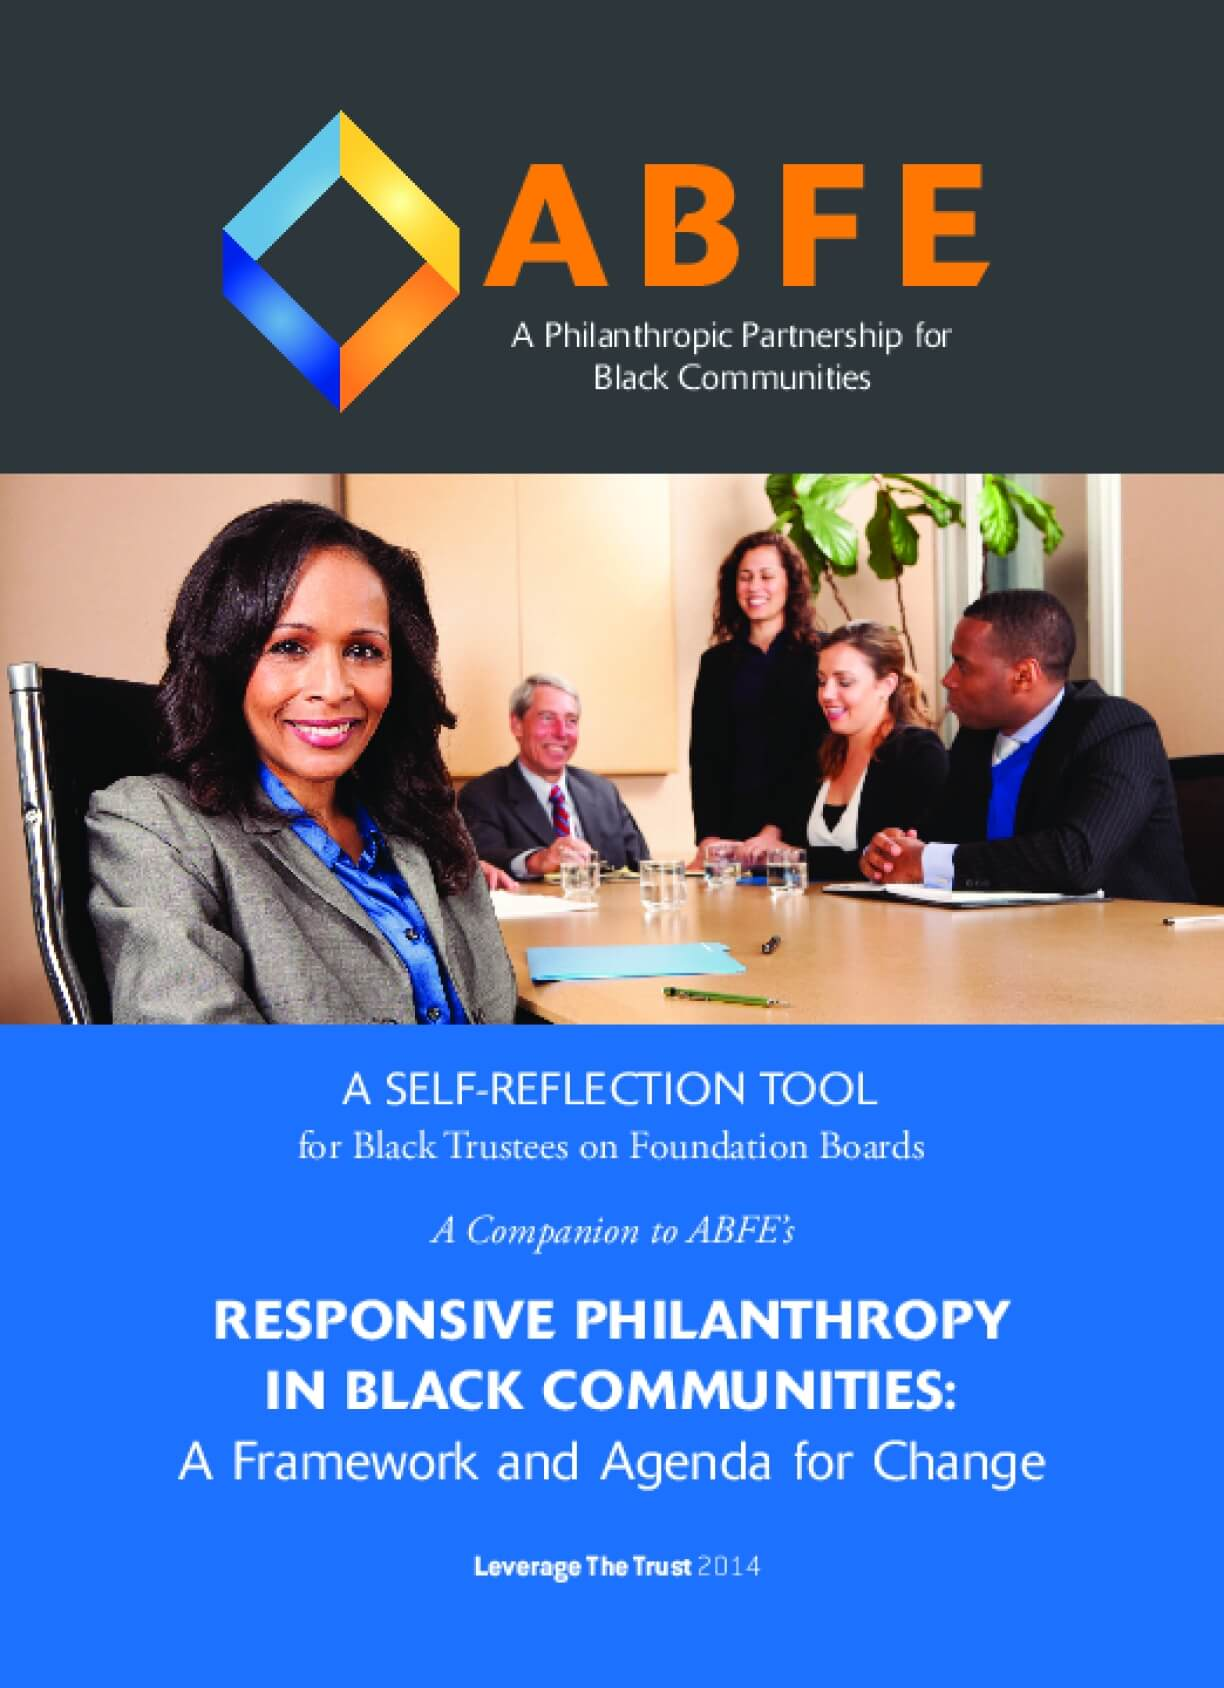 A Self-reflection Tool for Black Trustees on Foundation Boards